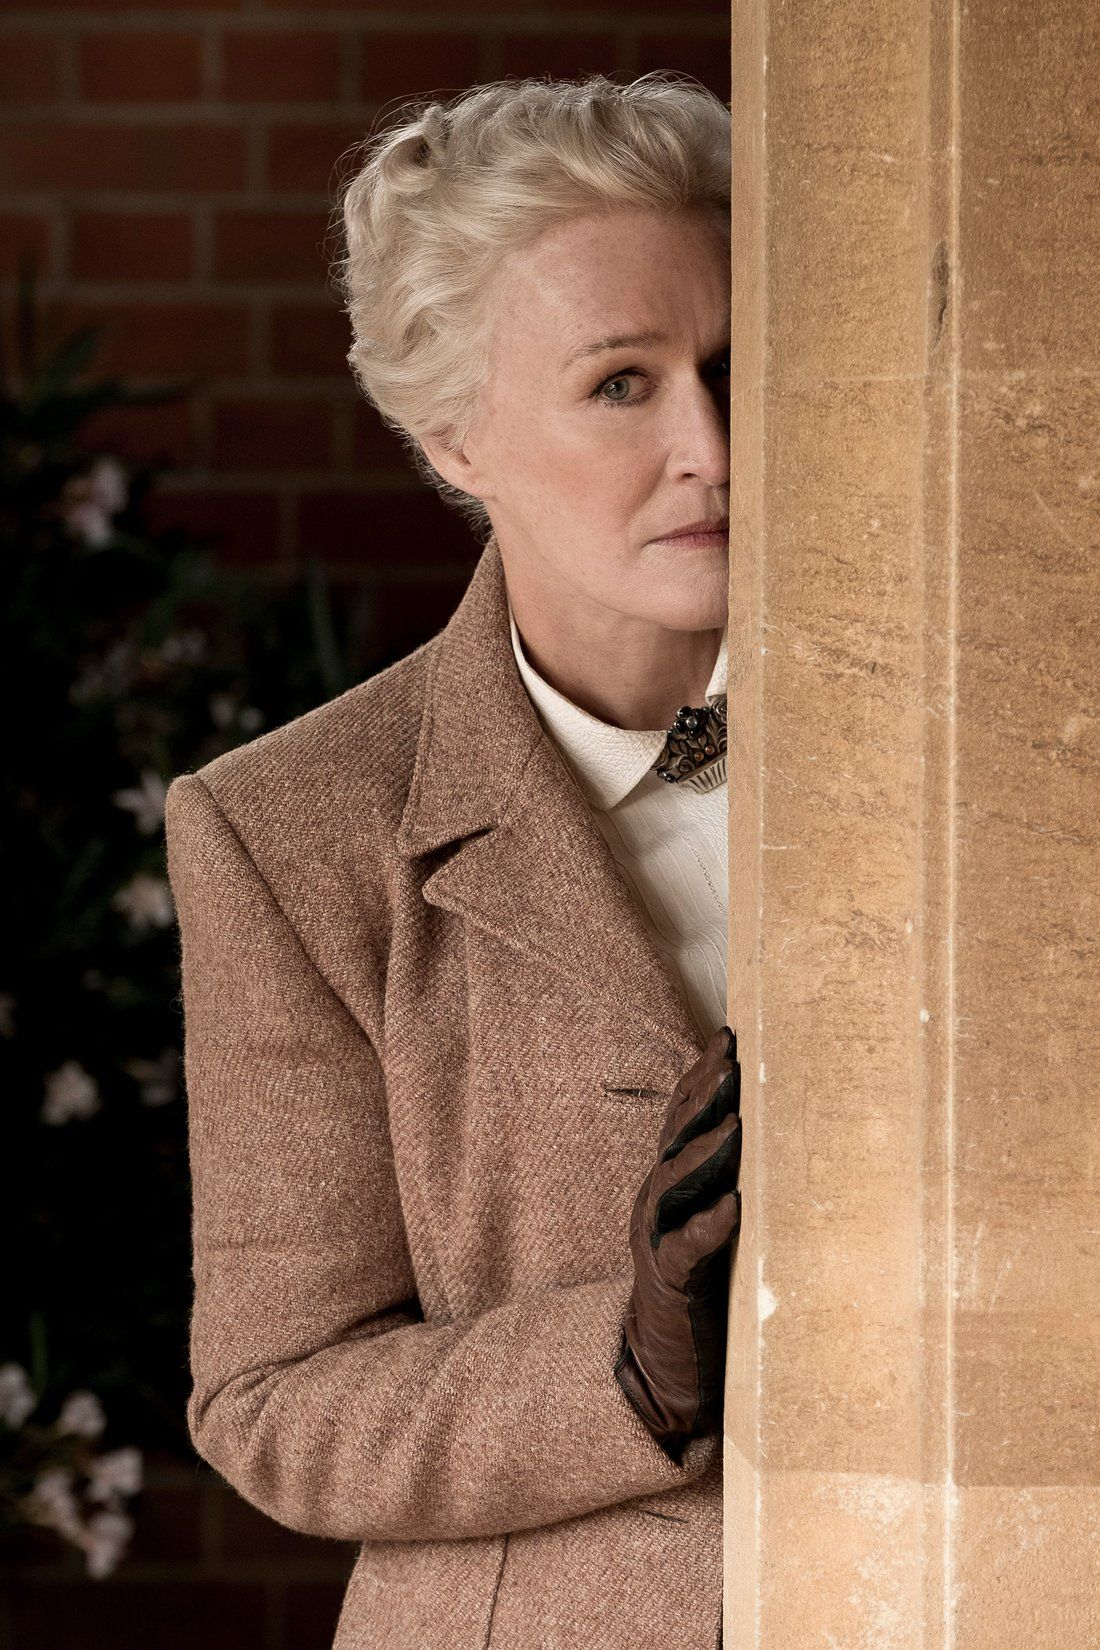 Glenn close on gleefully utaking the pissu out of mere mortals in